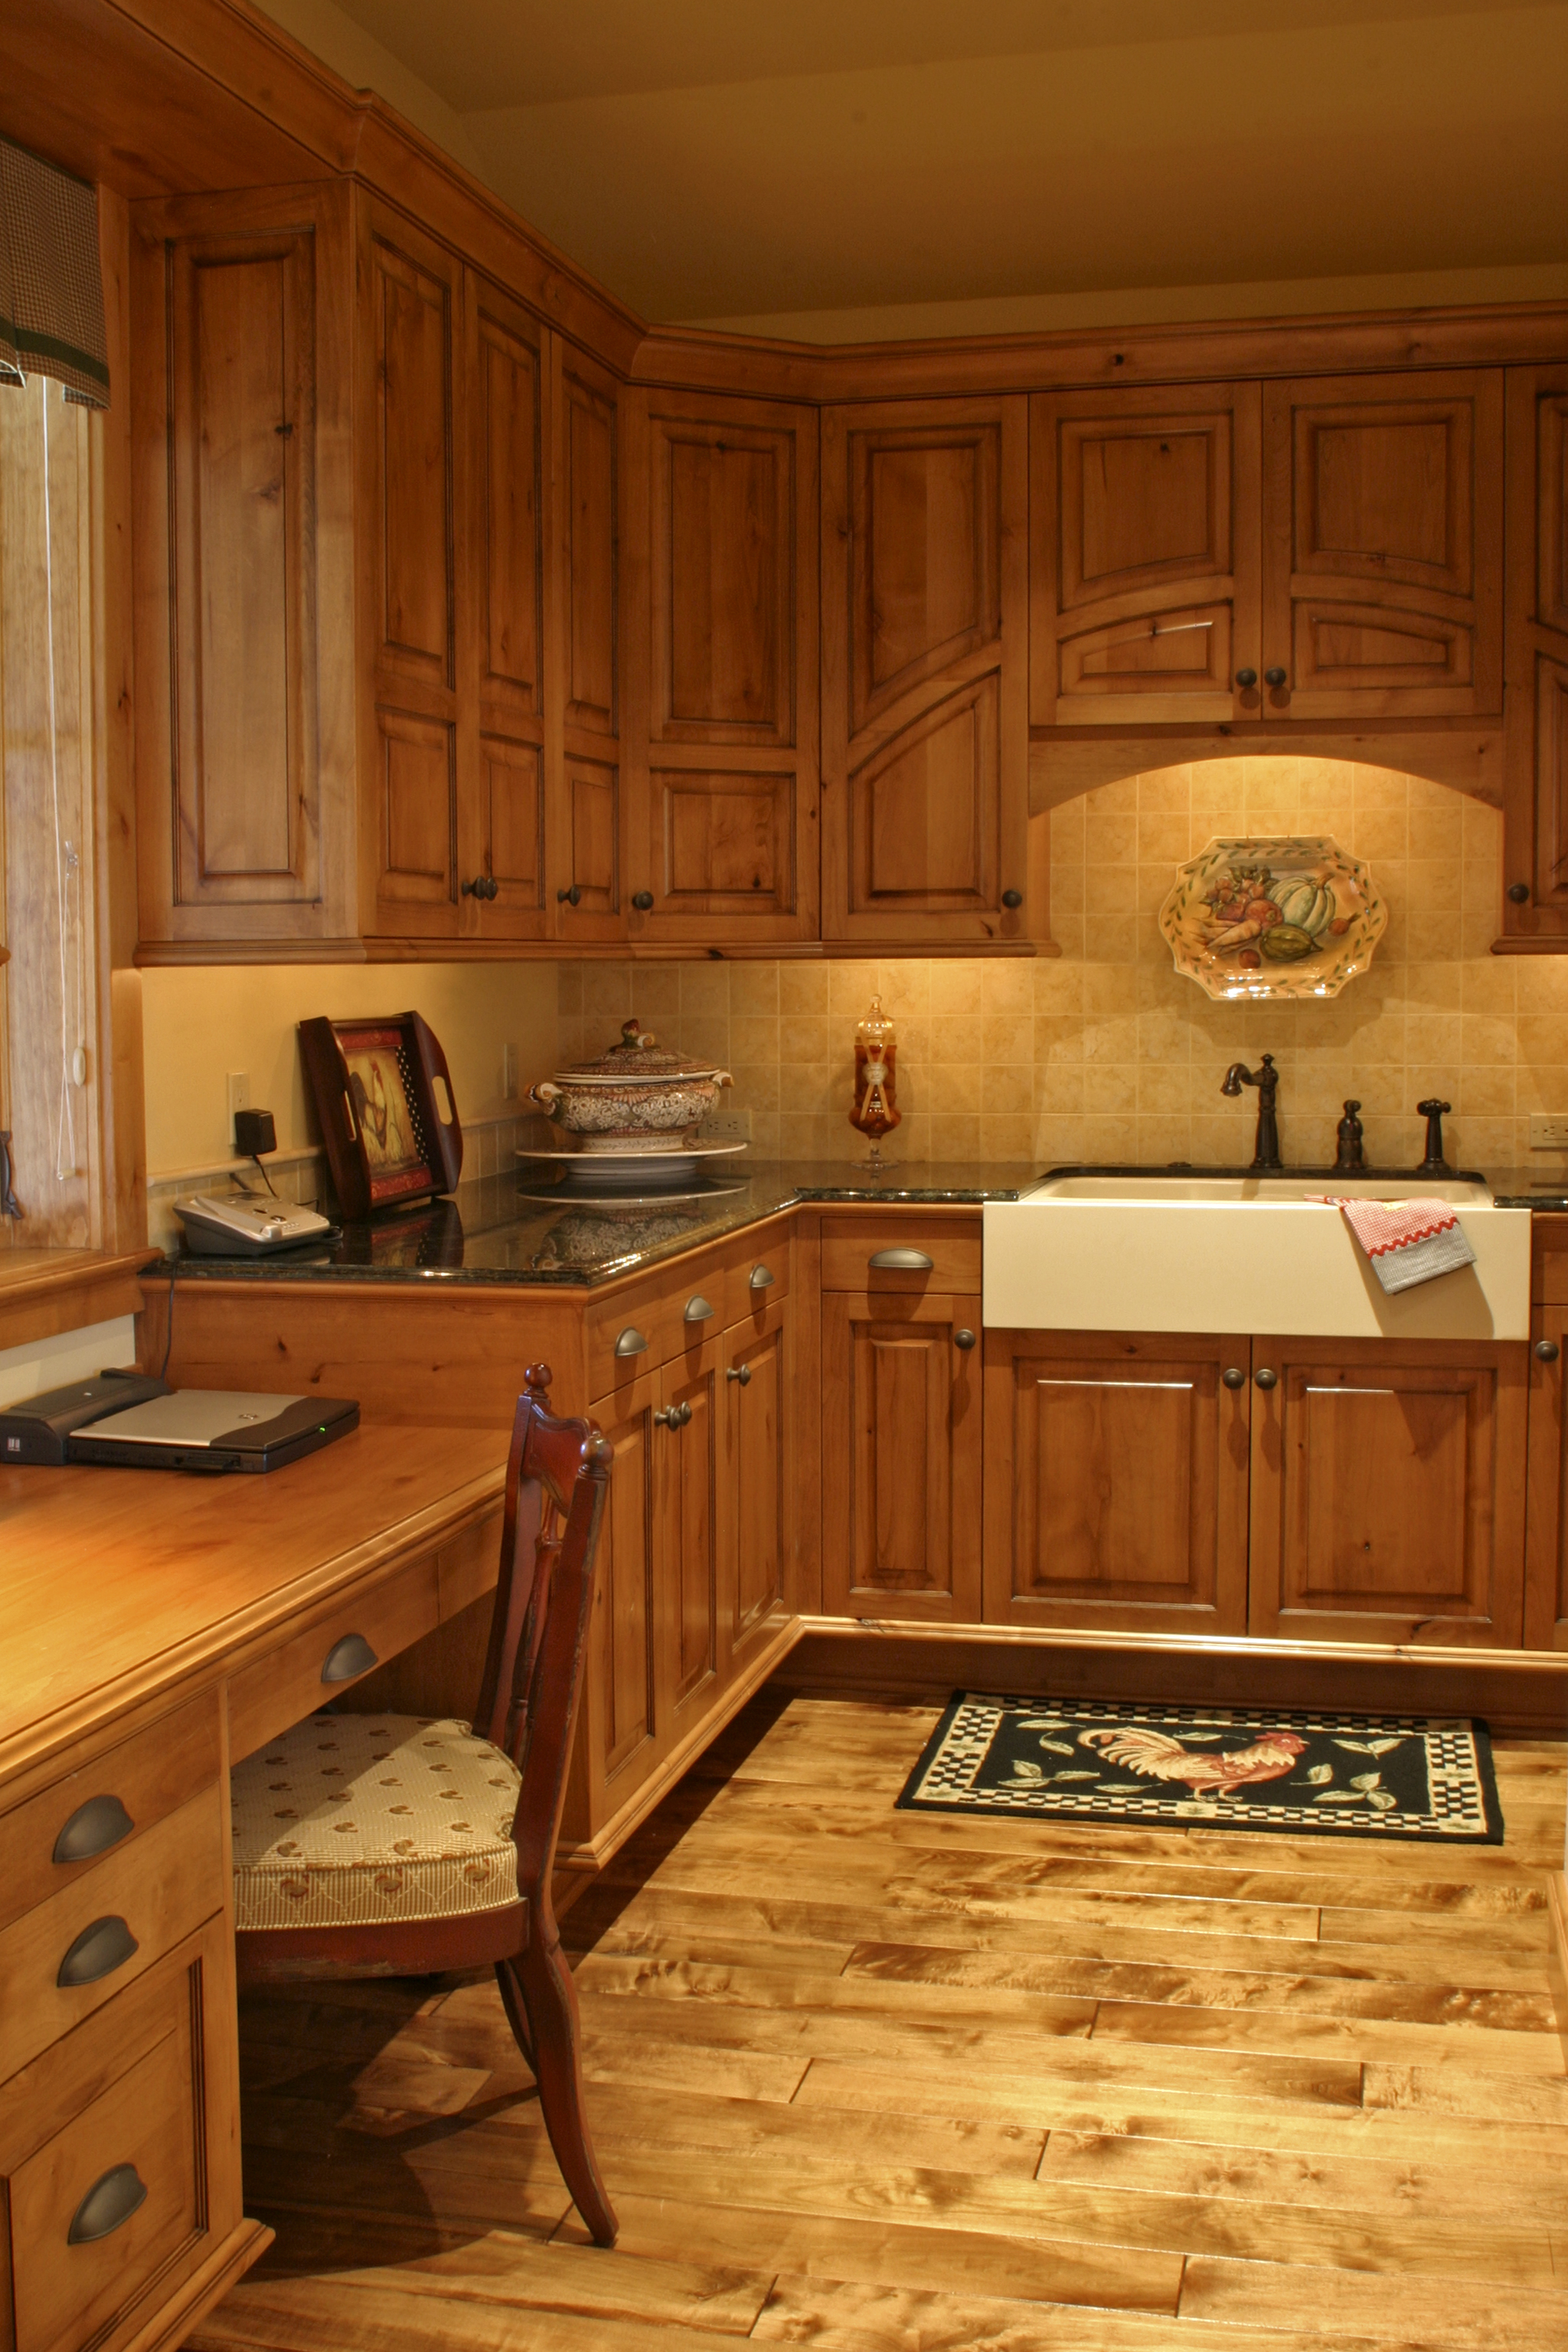 kitchen_den_1.jpg